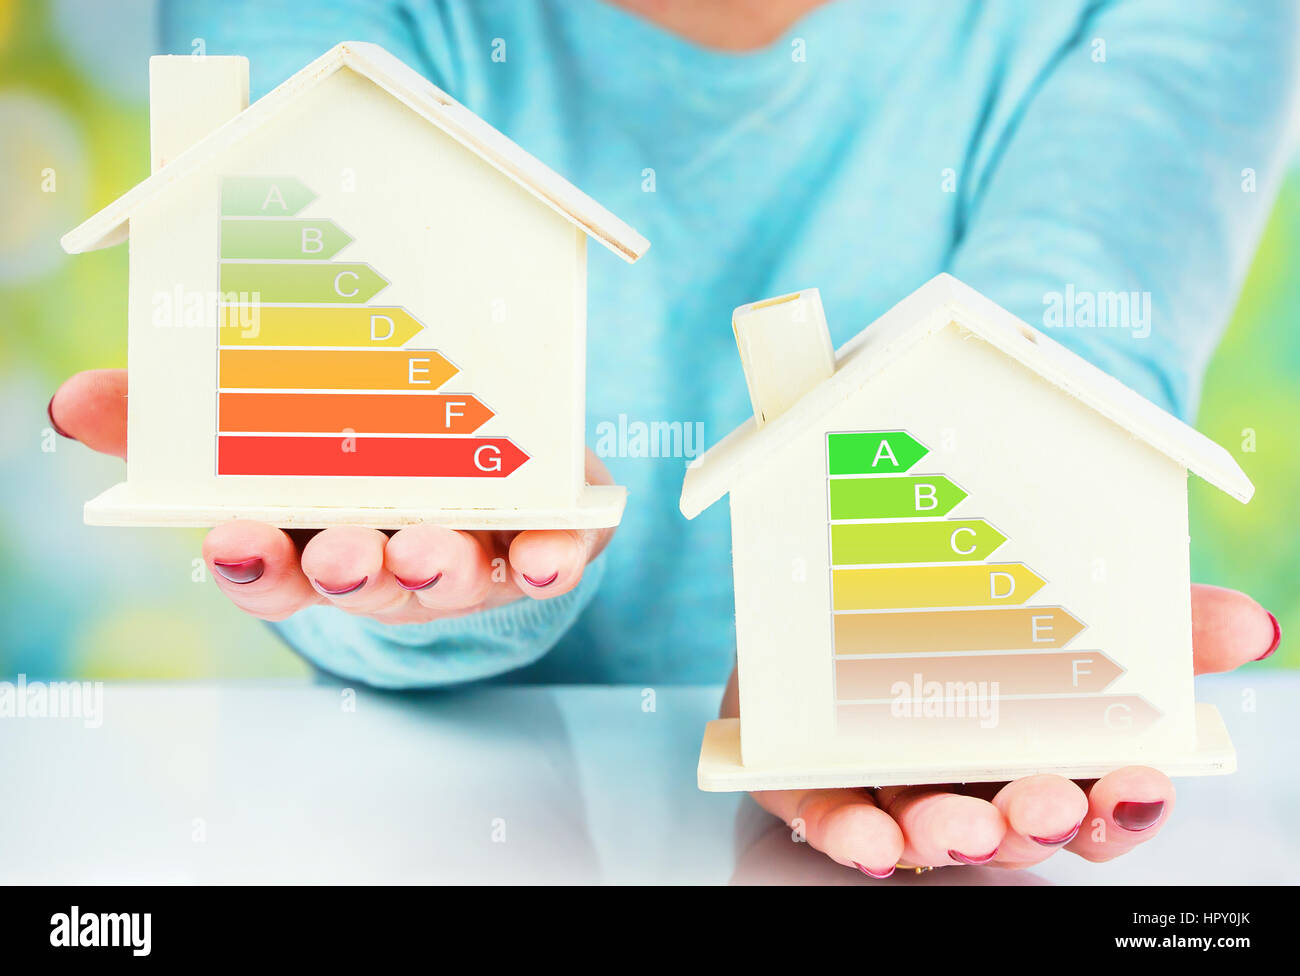 concept comparison between normal house and low consumption house with energy efficiency rating - Stock Image